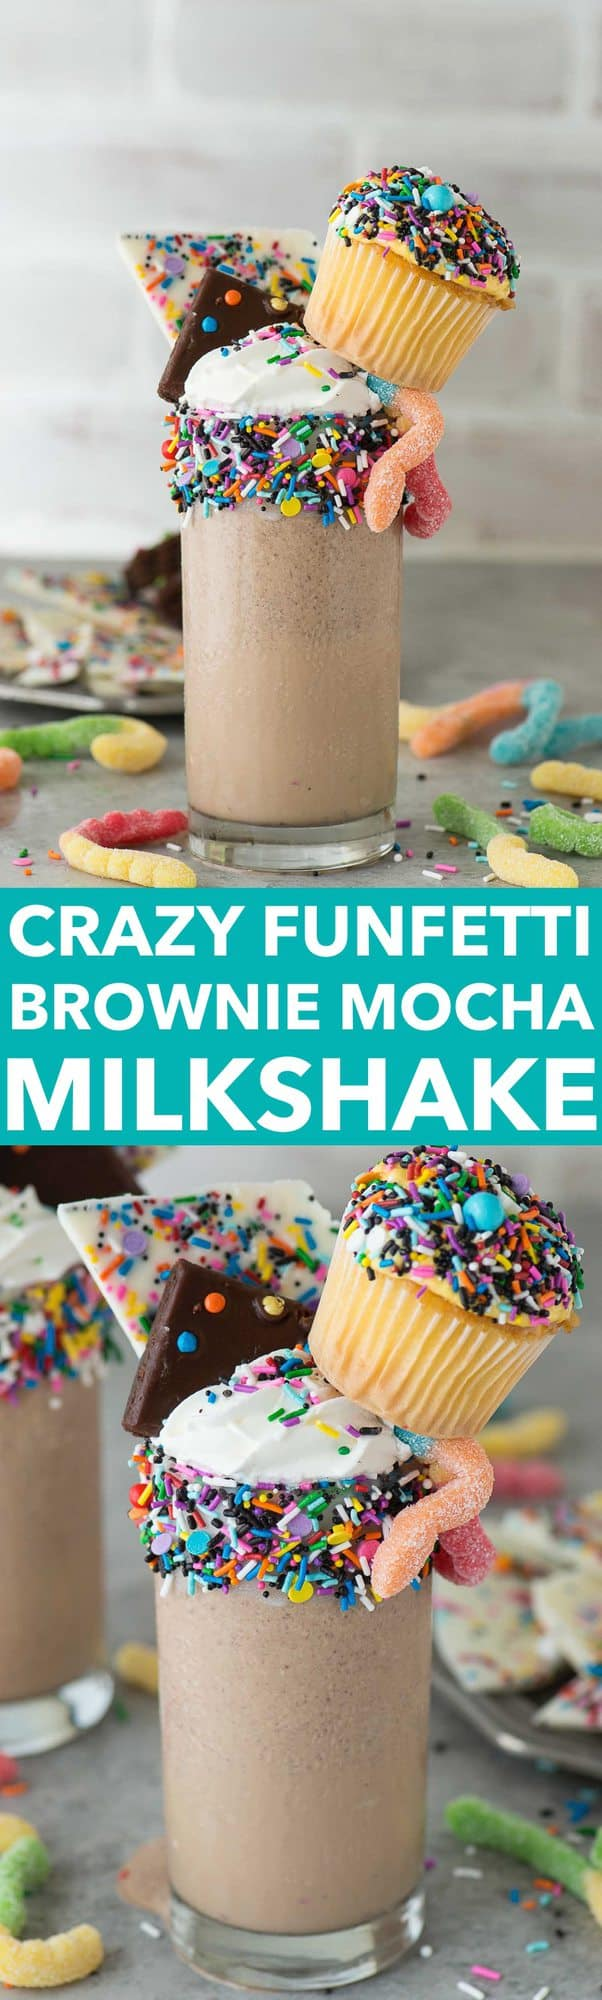 Look at this over the top, crazy funfetti brownie mocha milkshake! I can't decide if my favorite part is the cupcake or the gummy worms!